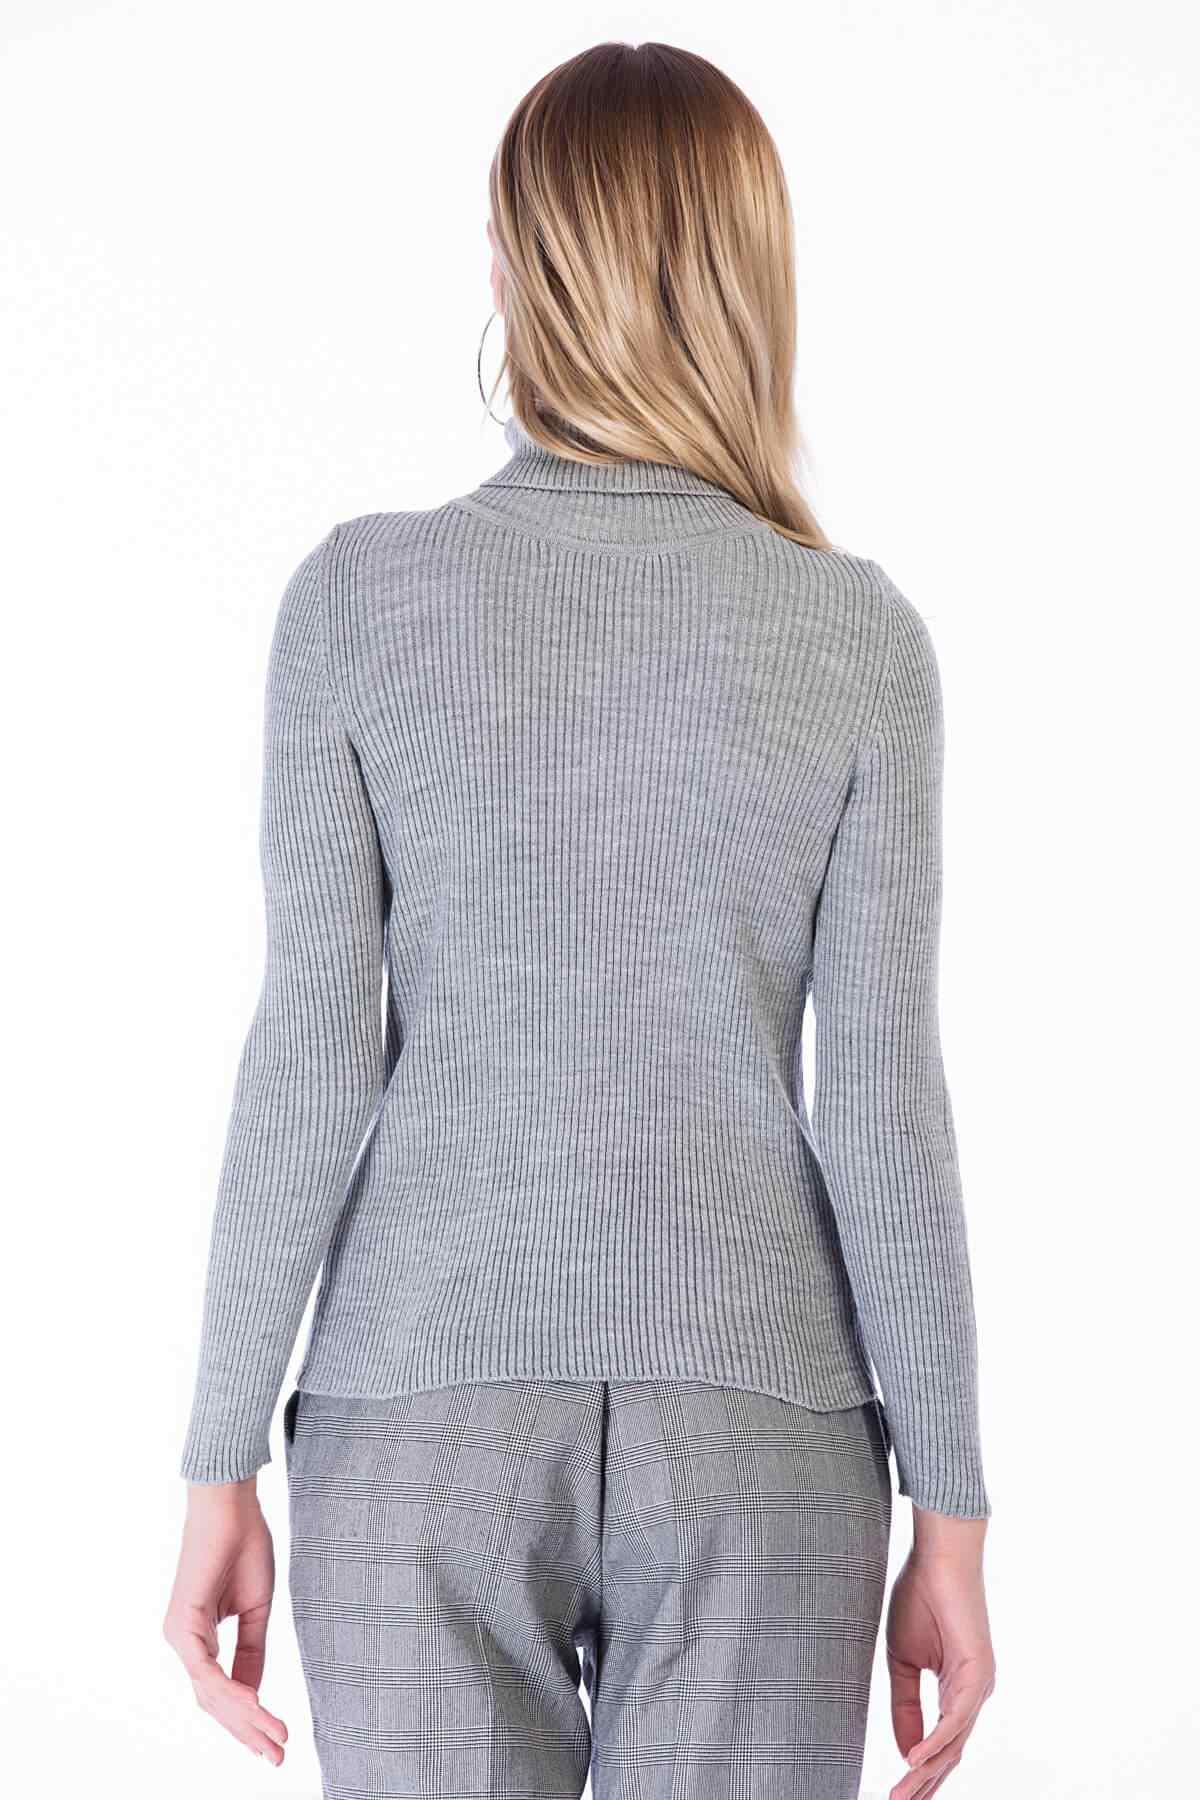 Cotton Mood Women Gray Slim Ribbed Camisole Turtleneck Long Sleeve Knitwear Sweater 8386000